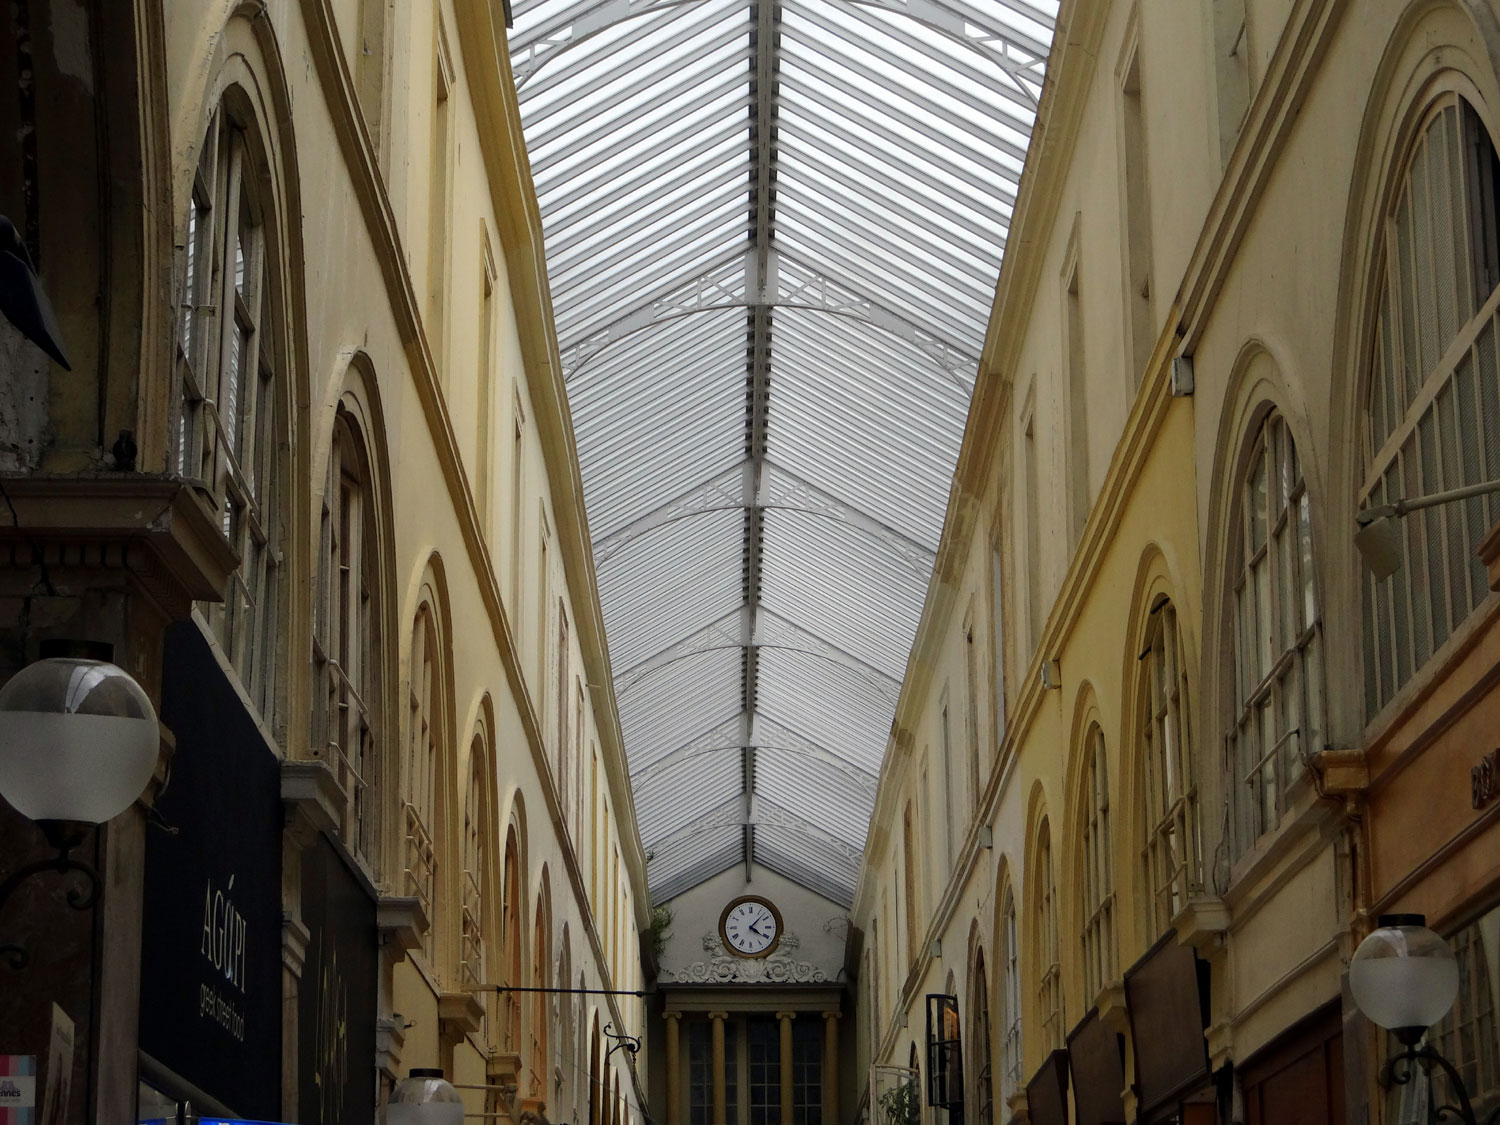 Passage Choiseul